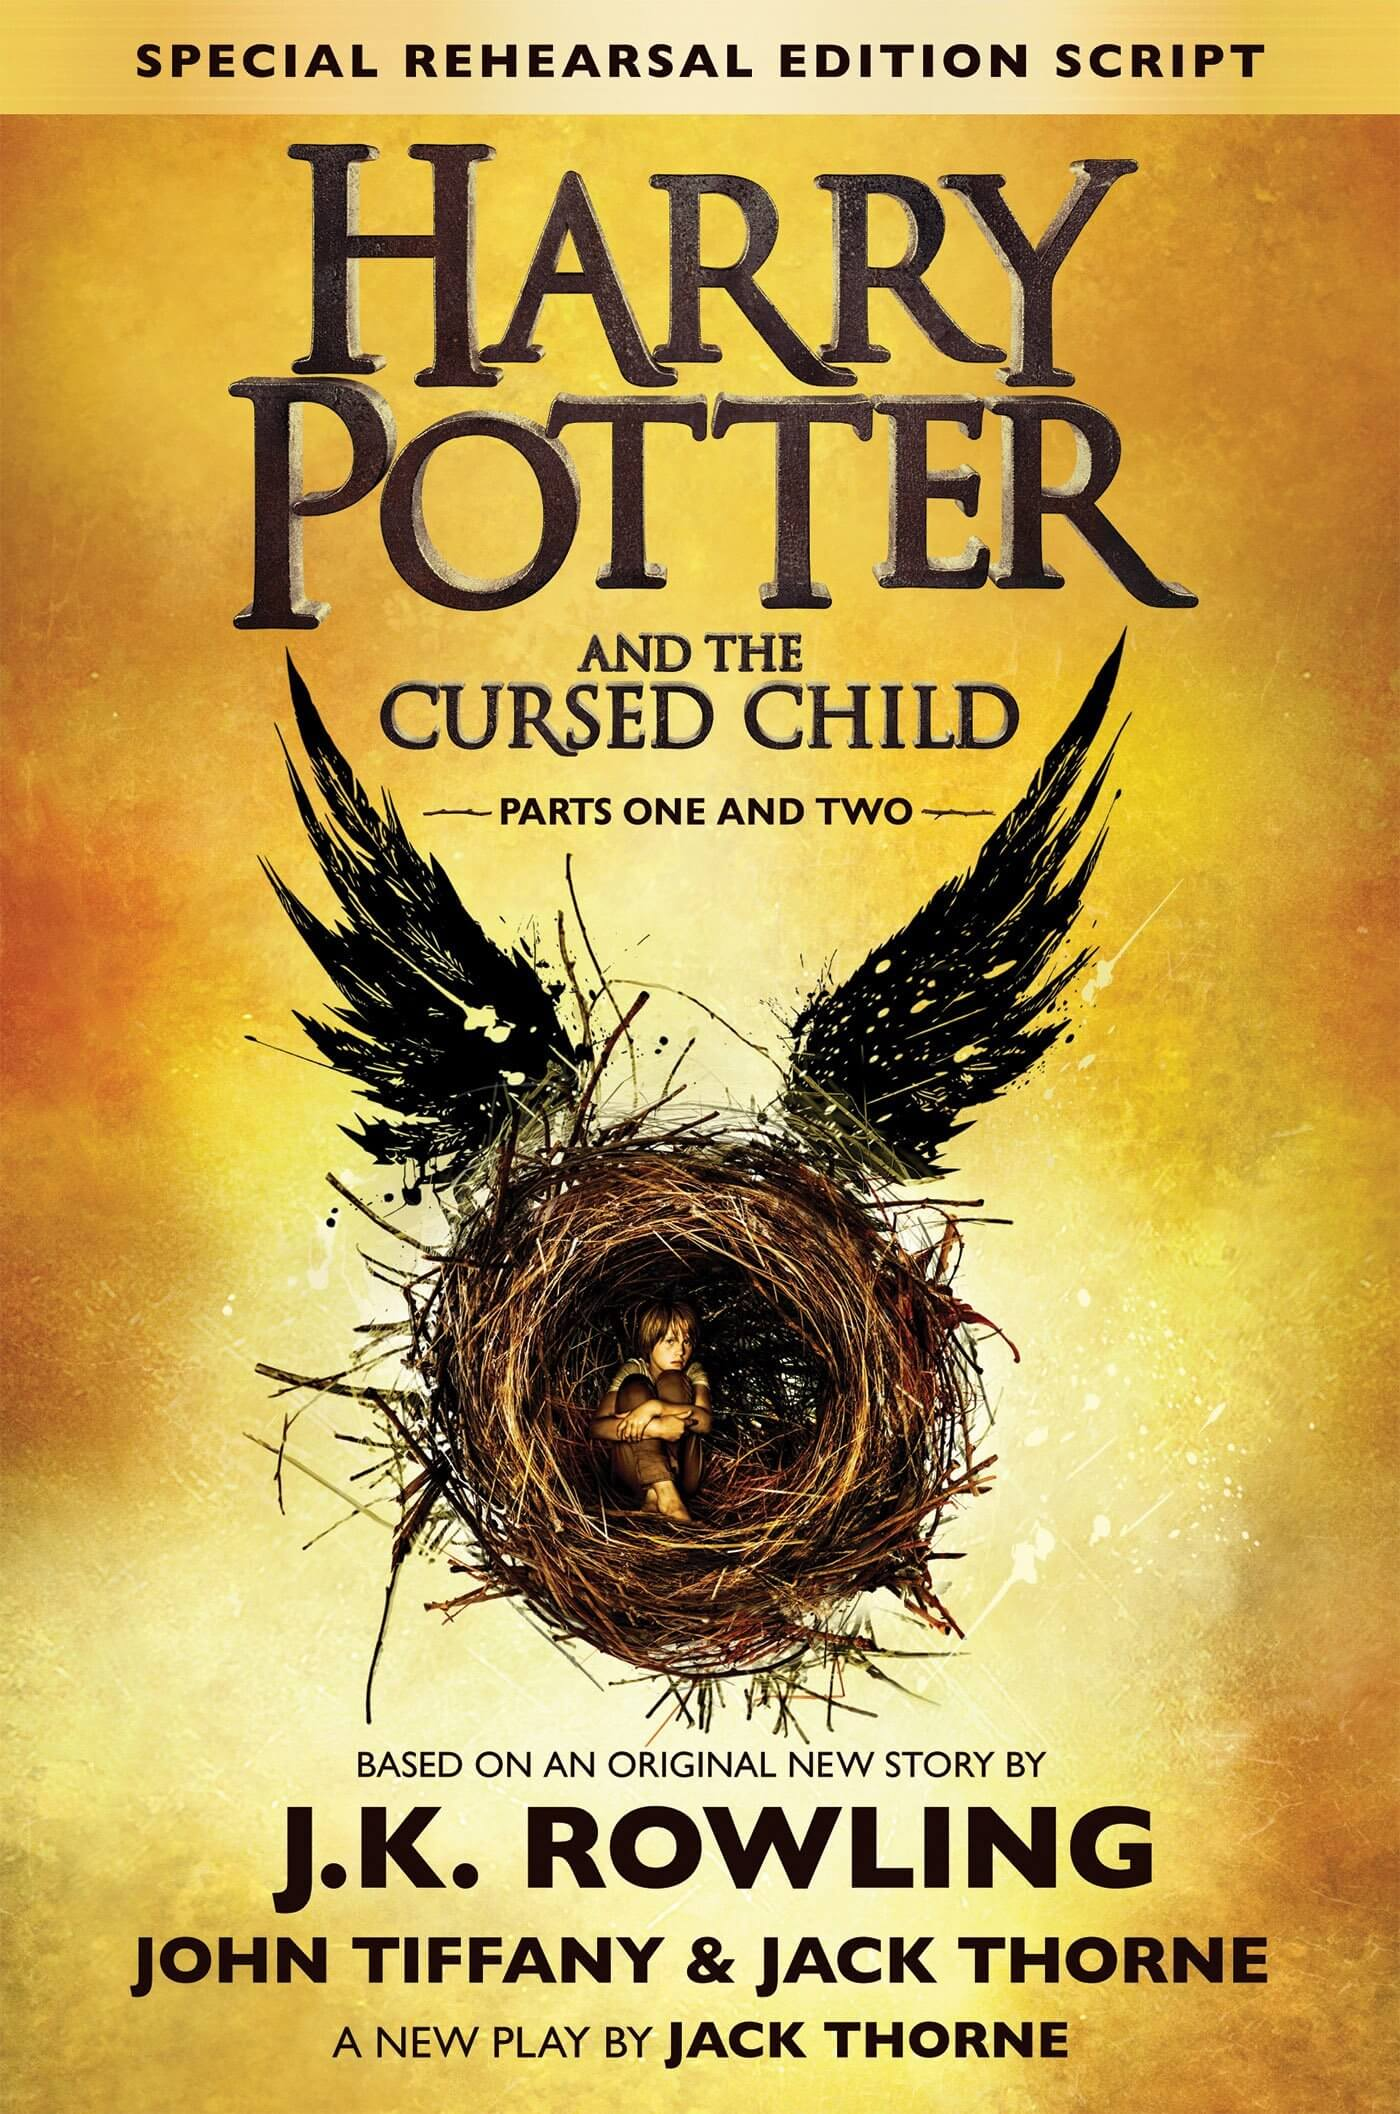 capa do livro cursed child